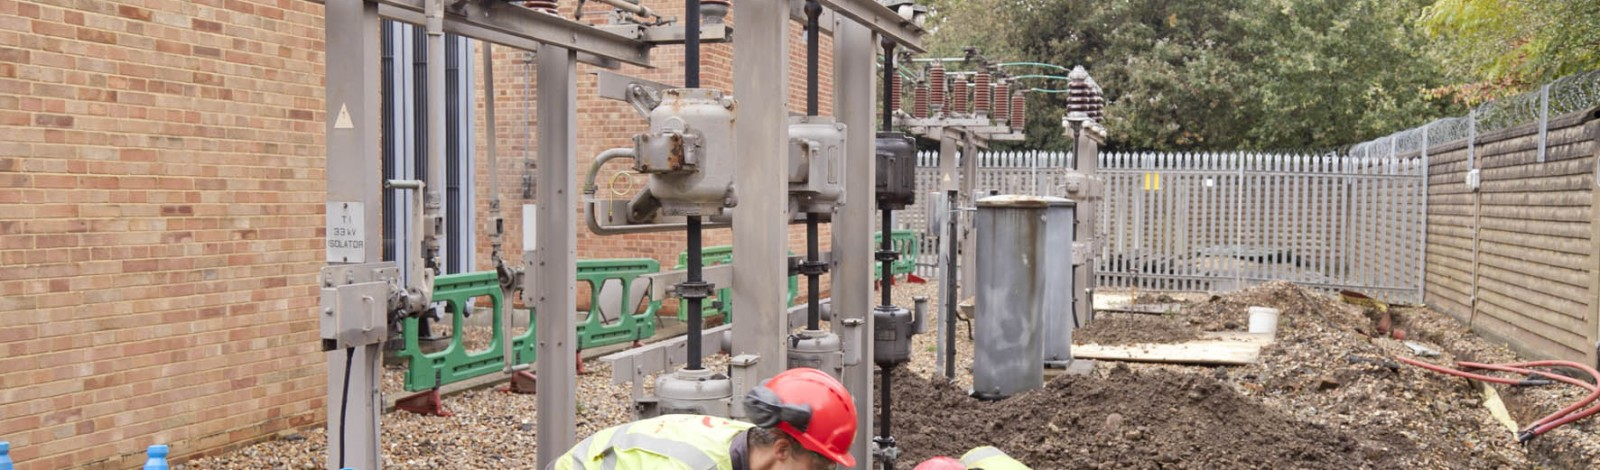 Crowlands to Shenfield – undergound cable installation for a 33kV network supply - Clancy Docwra